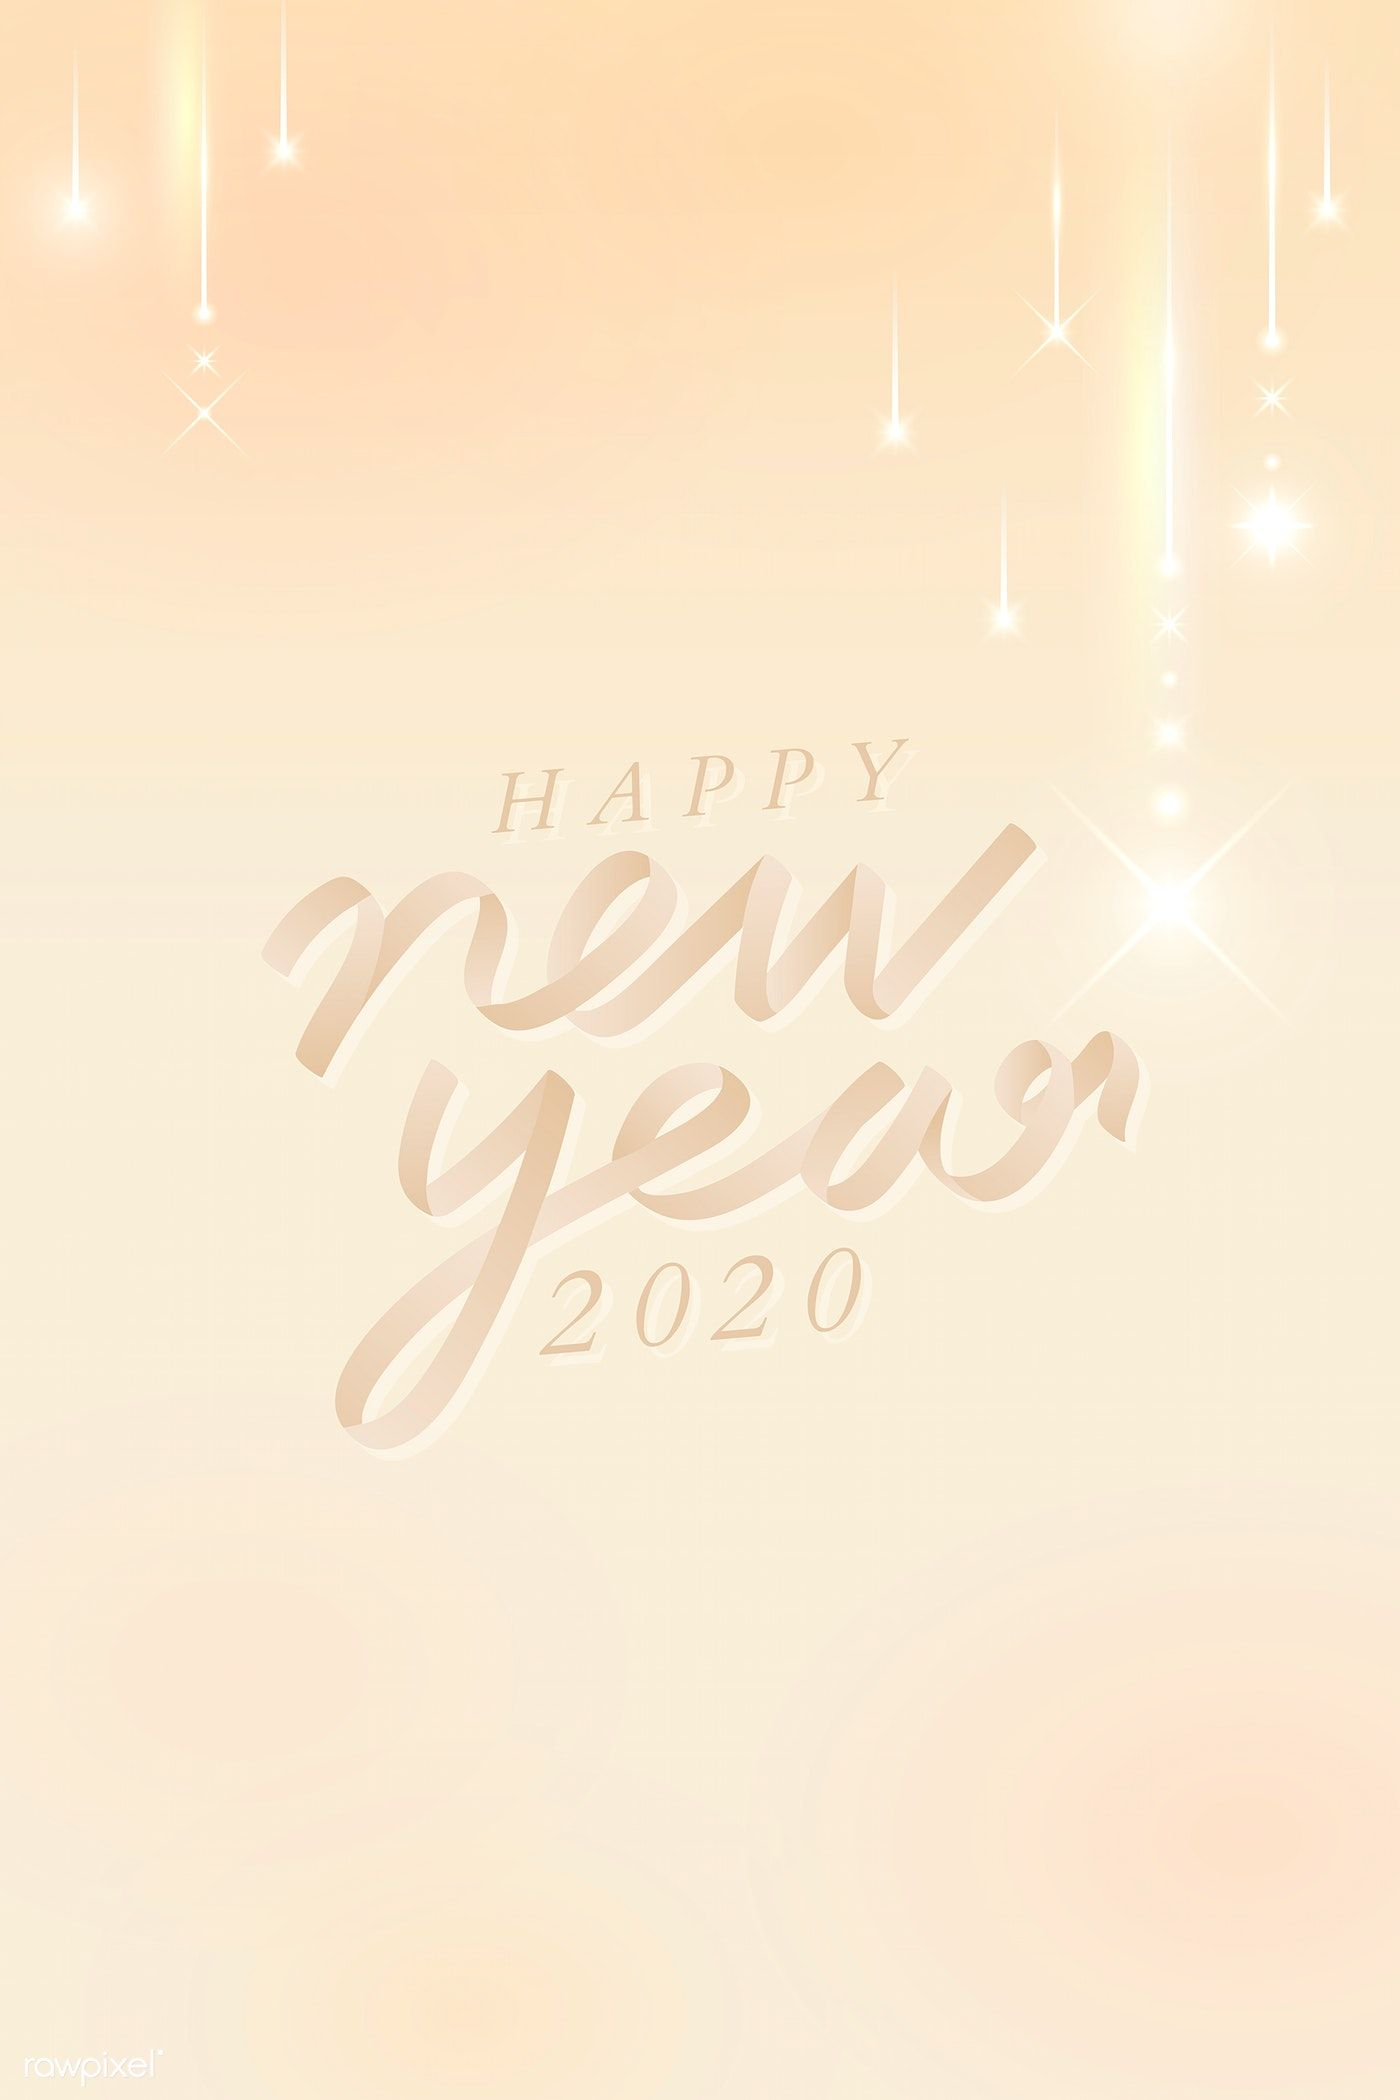 Download Premium Vector Of Happy New Year 2020 Greeting Card Vector 1234406 Happy New Year 2020 Happy New Year Images Happy New Year Cards